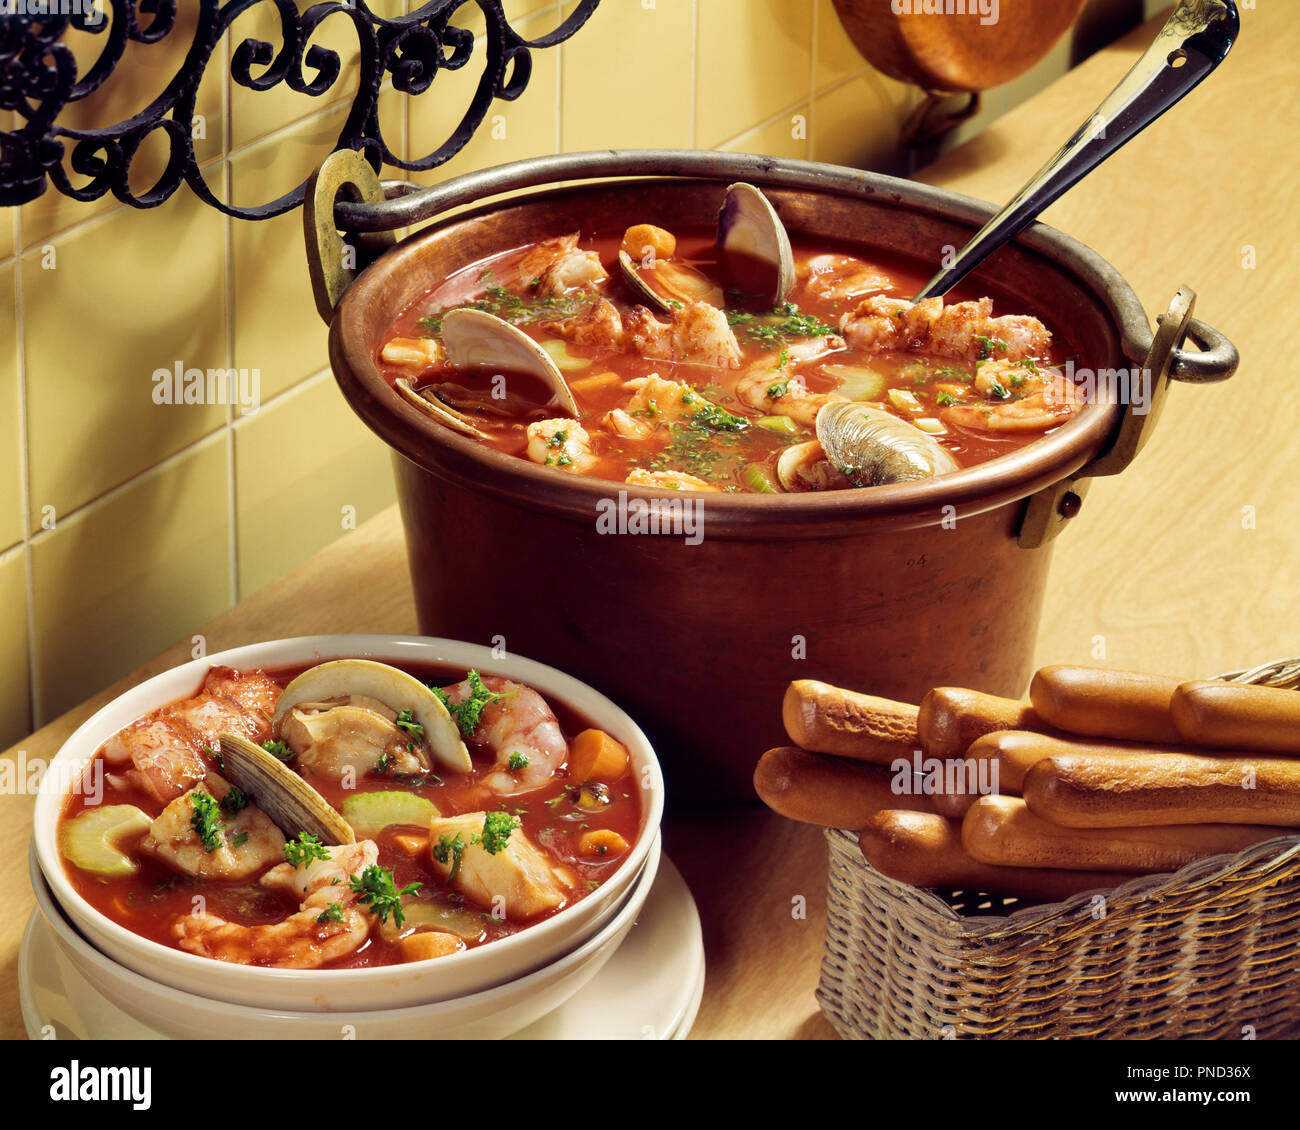 1980s SEAFOOD STEW IN COPPER POT SINGLE SERVING IN A BOWL WITH BREAD STICKS ALONG SIDE - kf21255 PHT001 HARS SEAFOOD - Stock Image